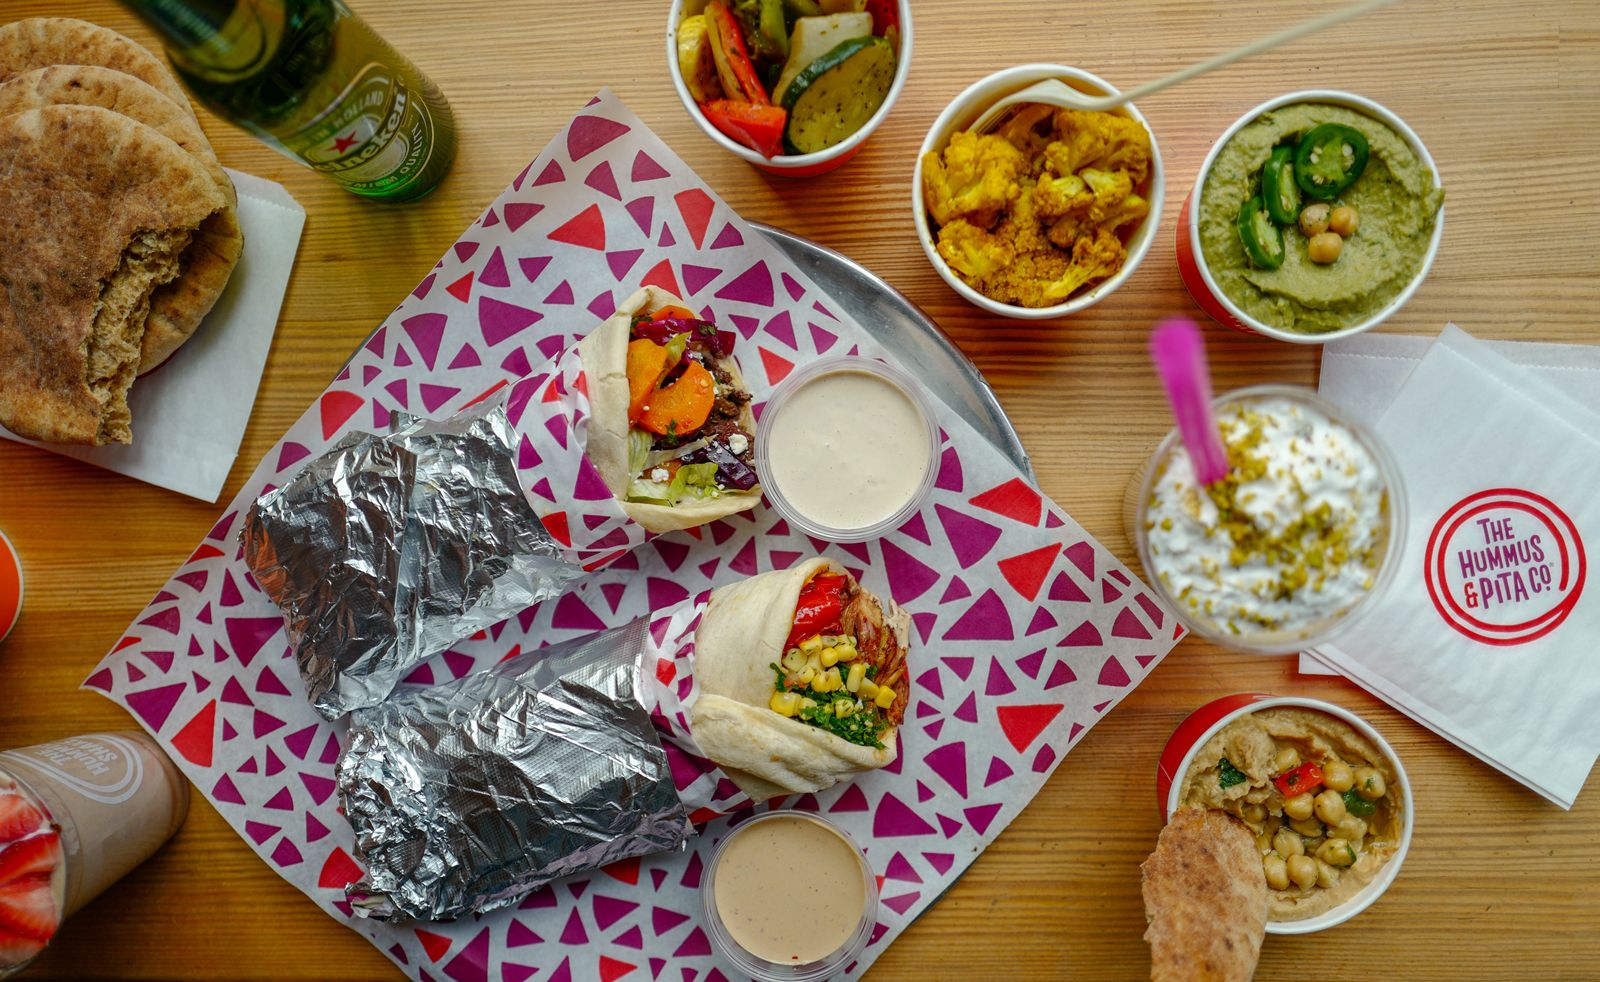 The Hummus & Pita Co. is celebrating the Grand Opening of their newest location in Huntsville, AL on Thursday, December 10th by giving away free meals to the first 50 customers.